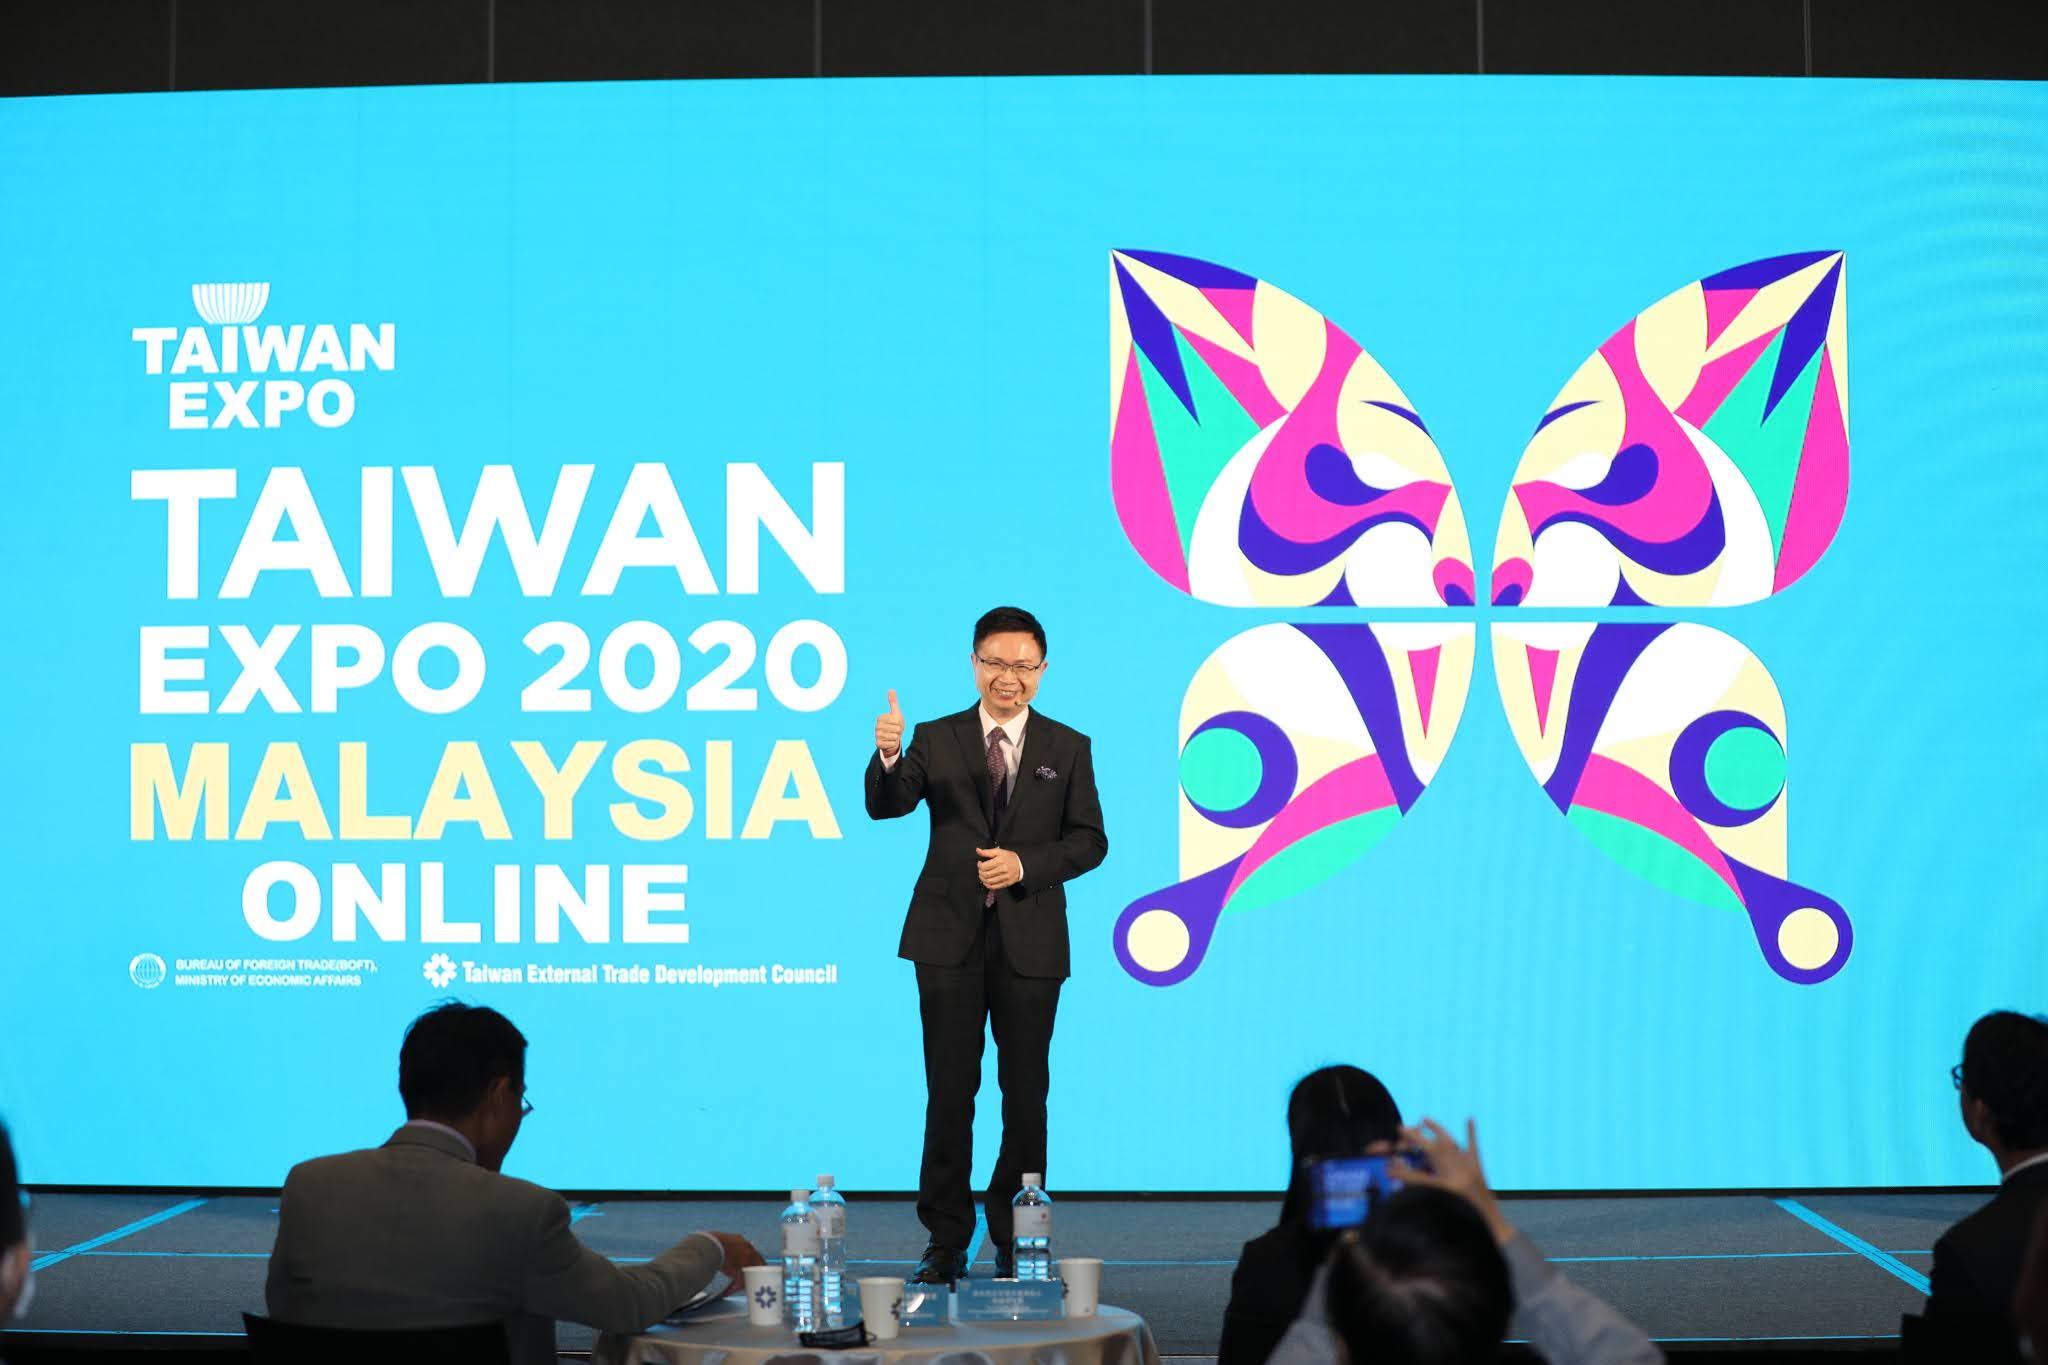 Taiwan Expo 2020 Goes Online in 3D Virtual Reality With Unique Immersive Experience